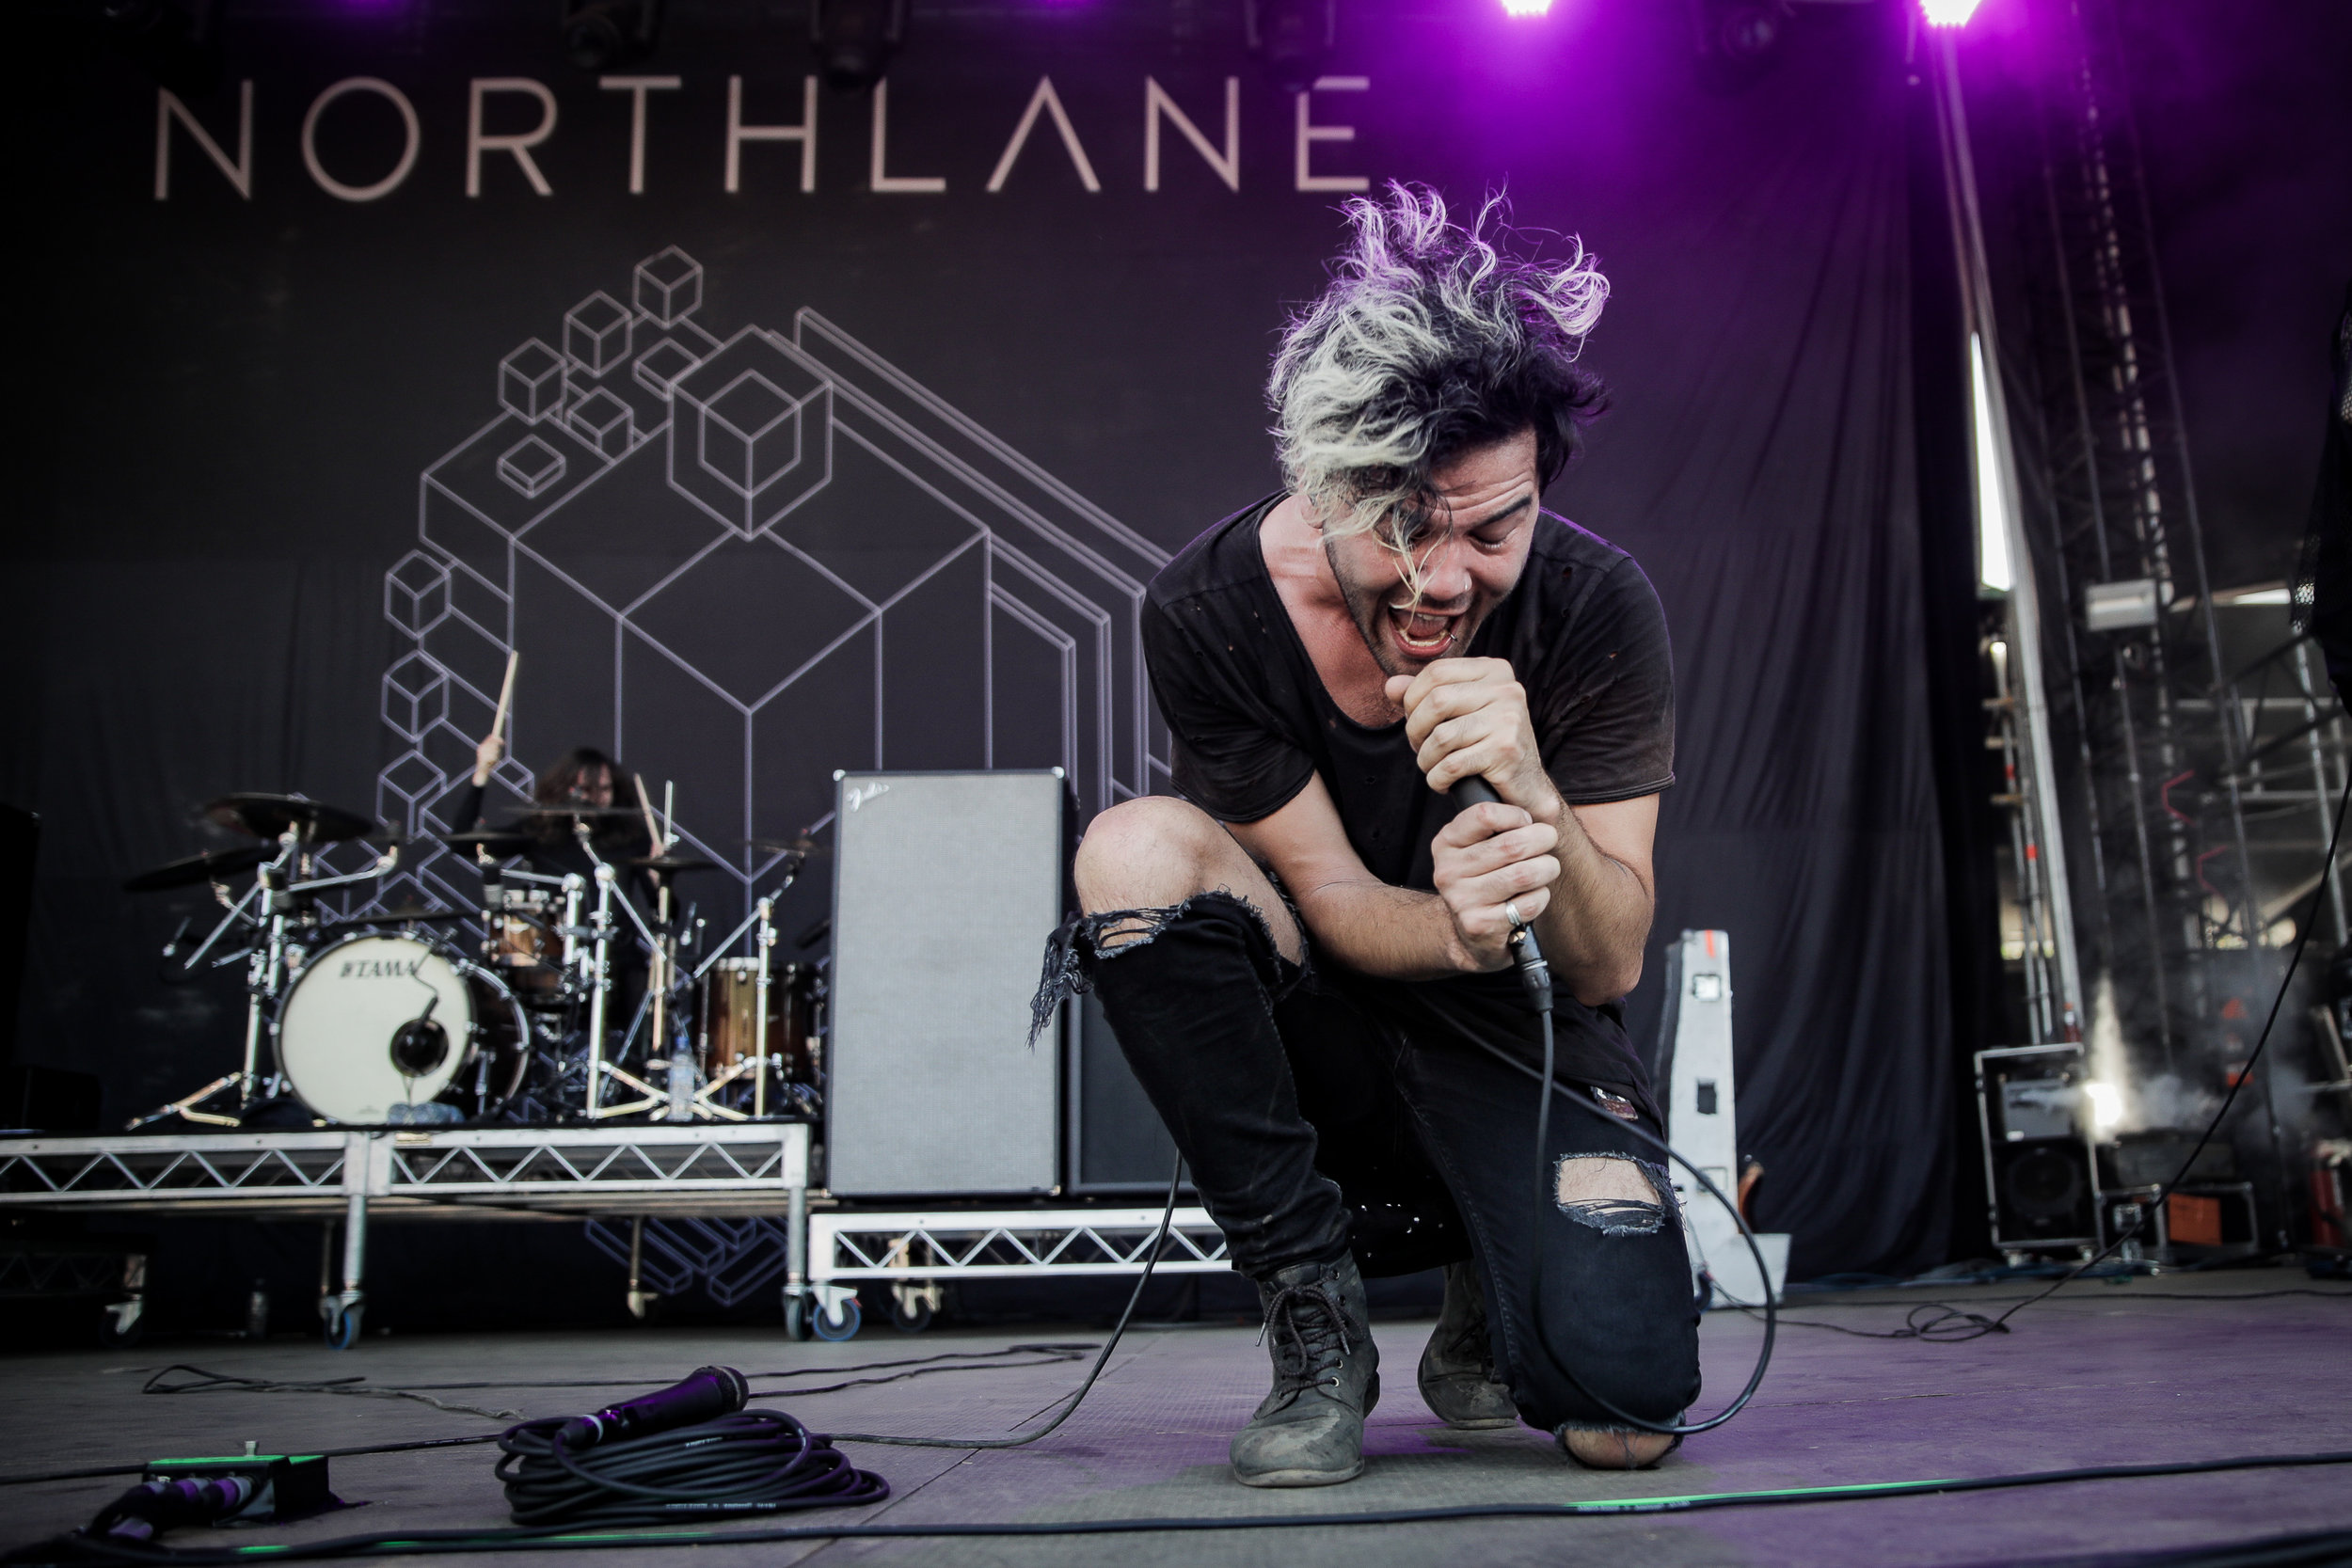 northlane_good things 18_josh groom (13).jpg